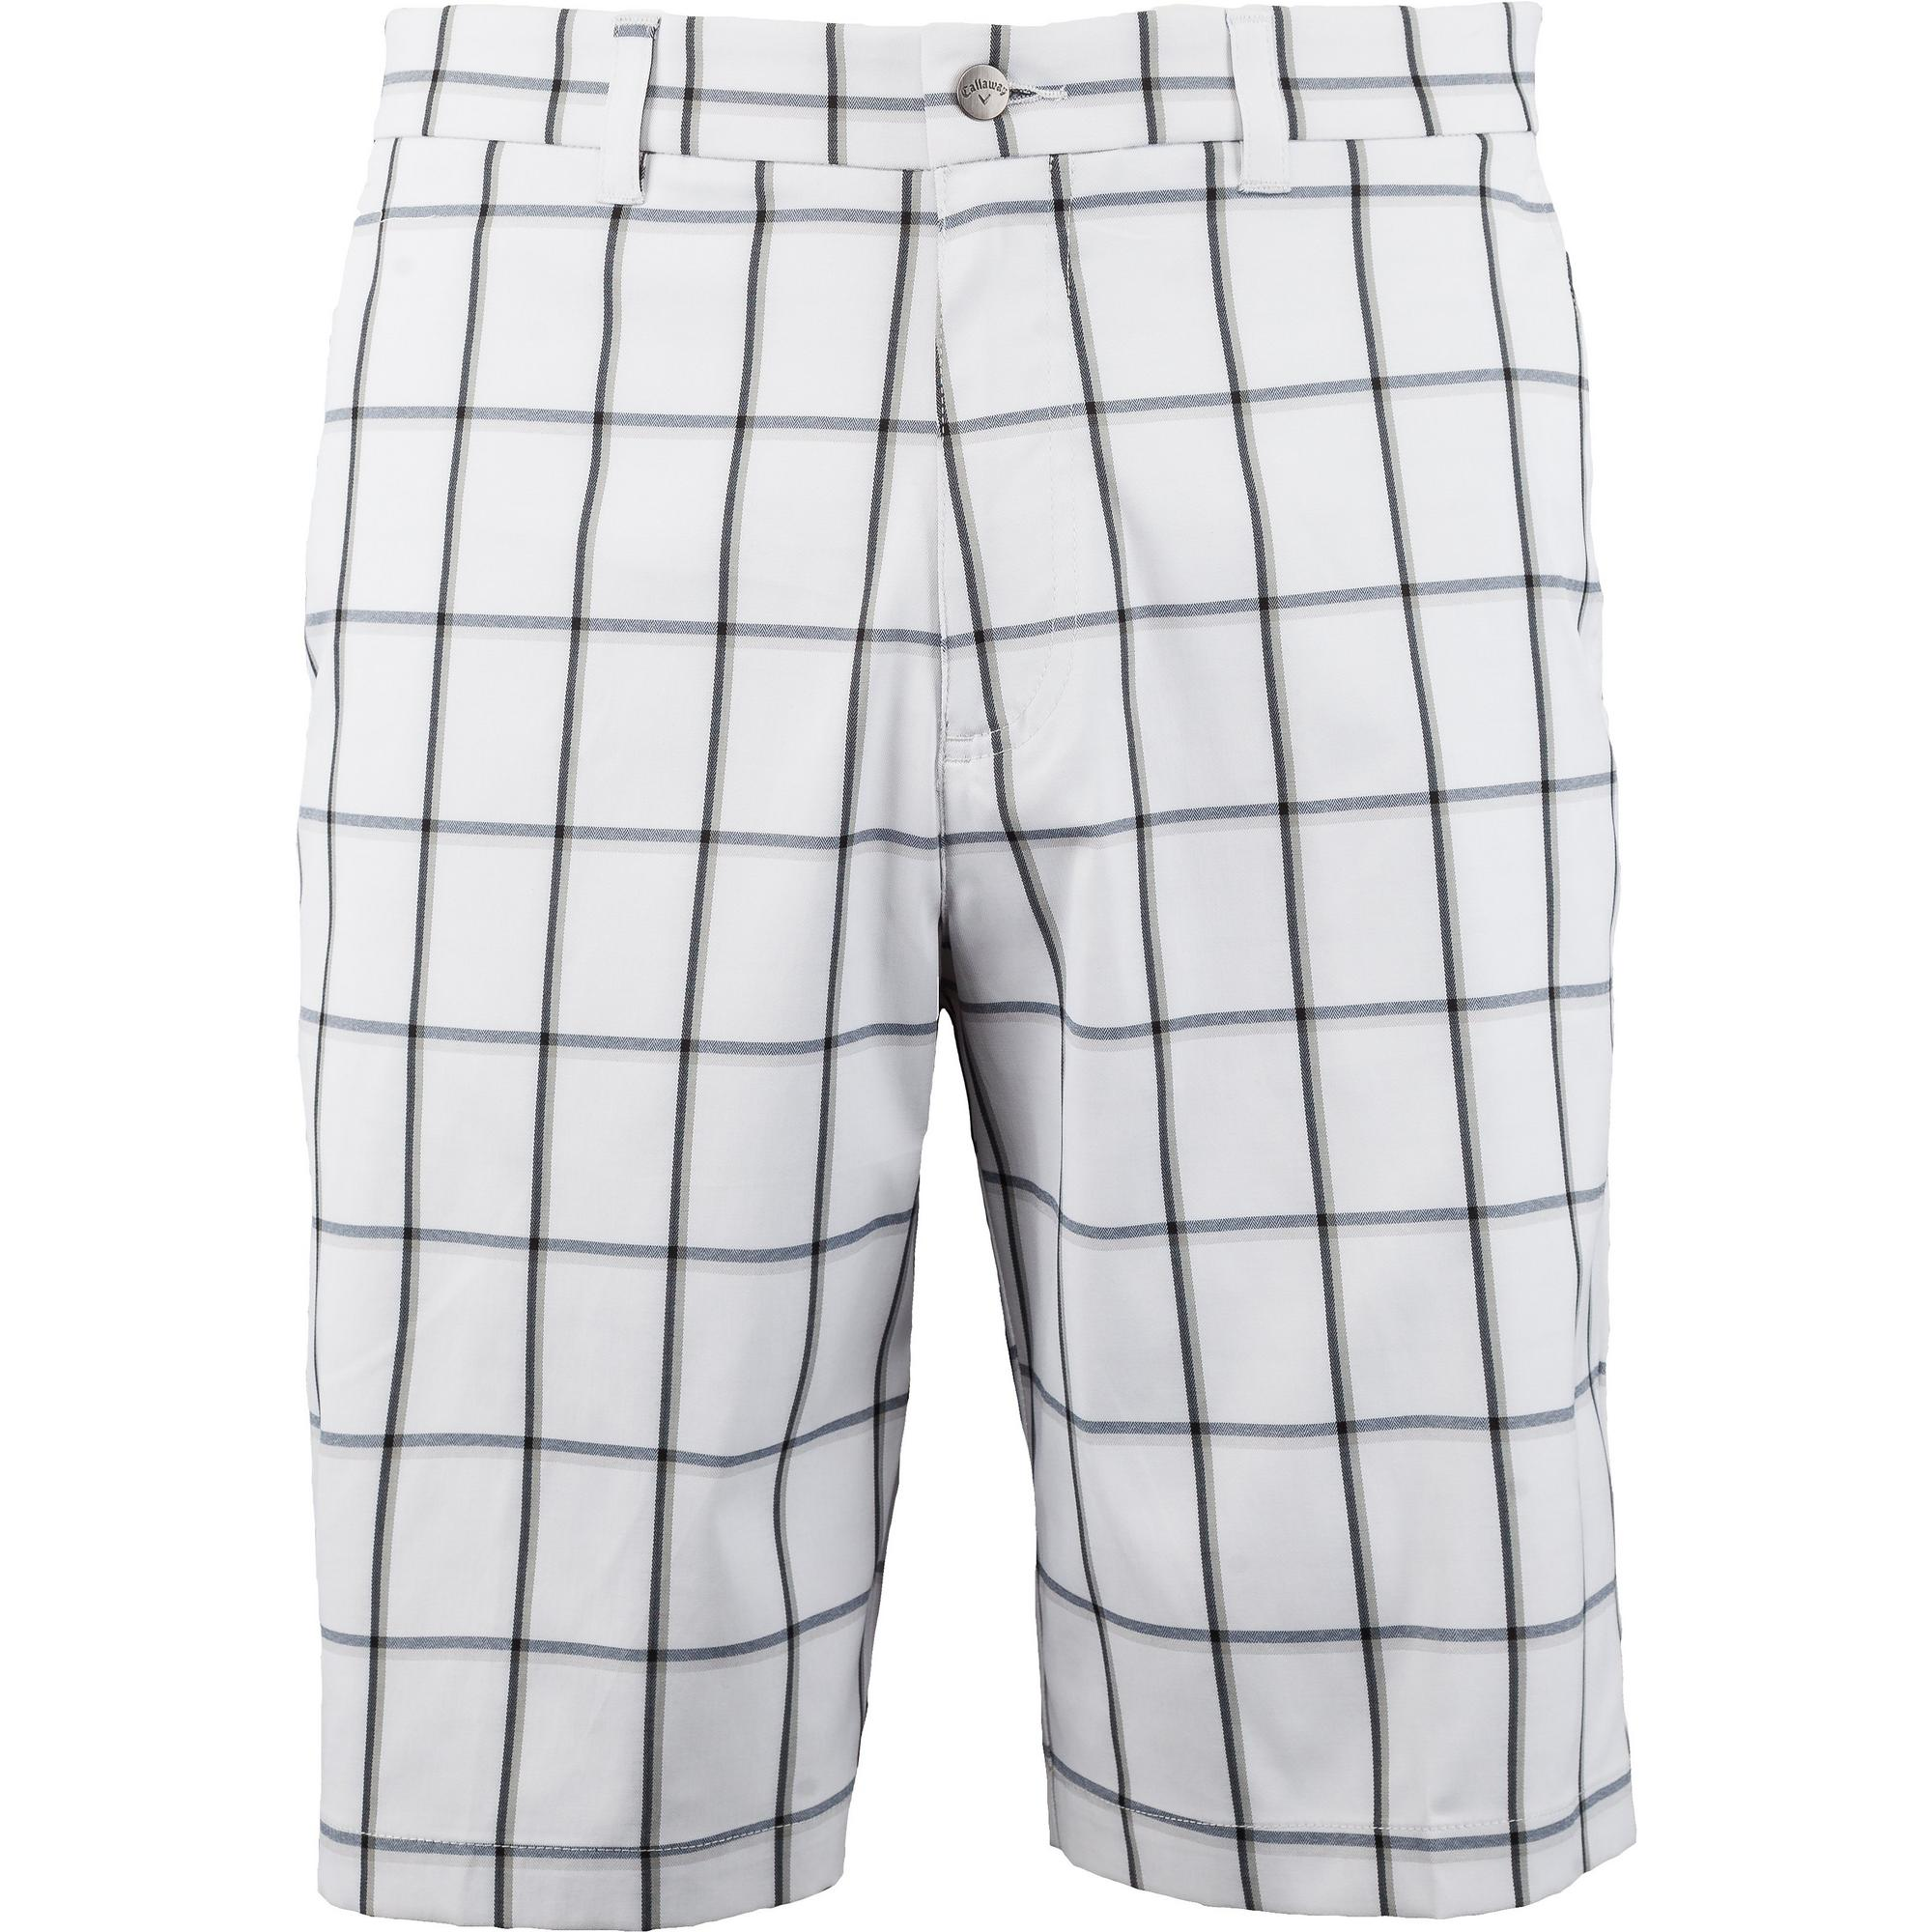 Men's Herringbone Plaid Shorts